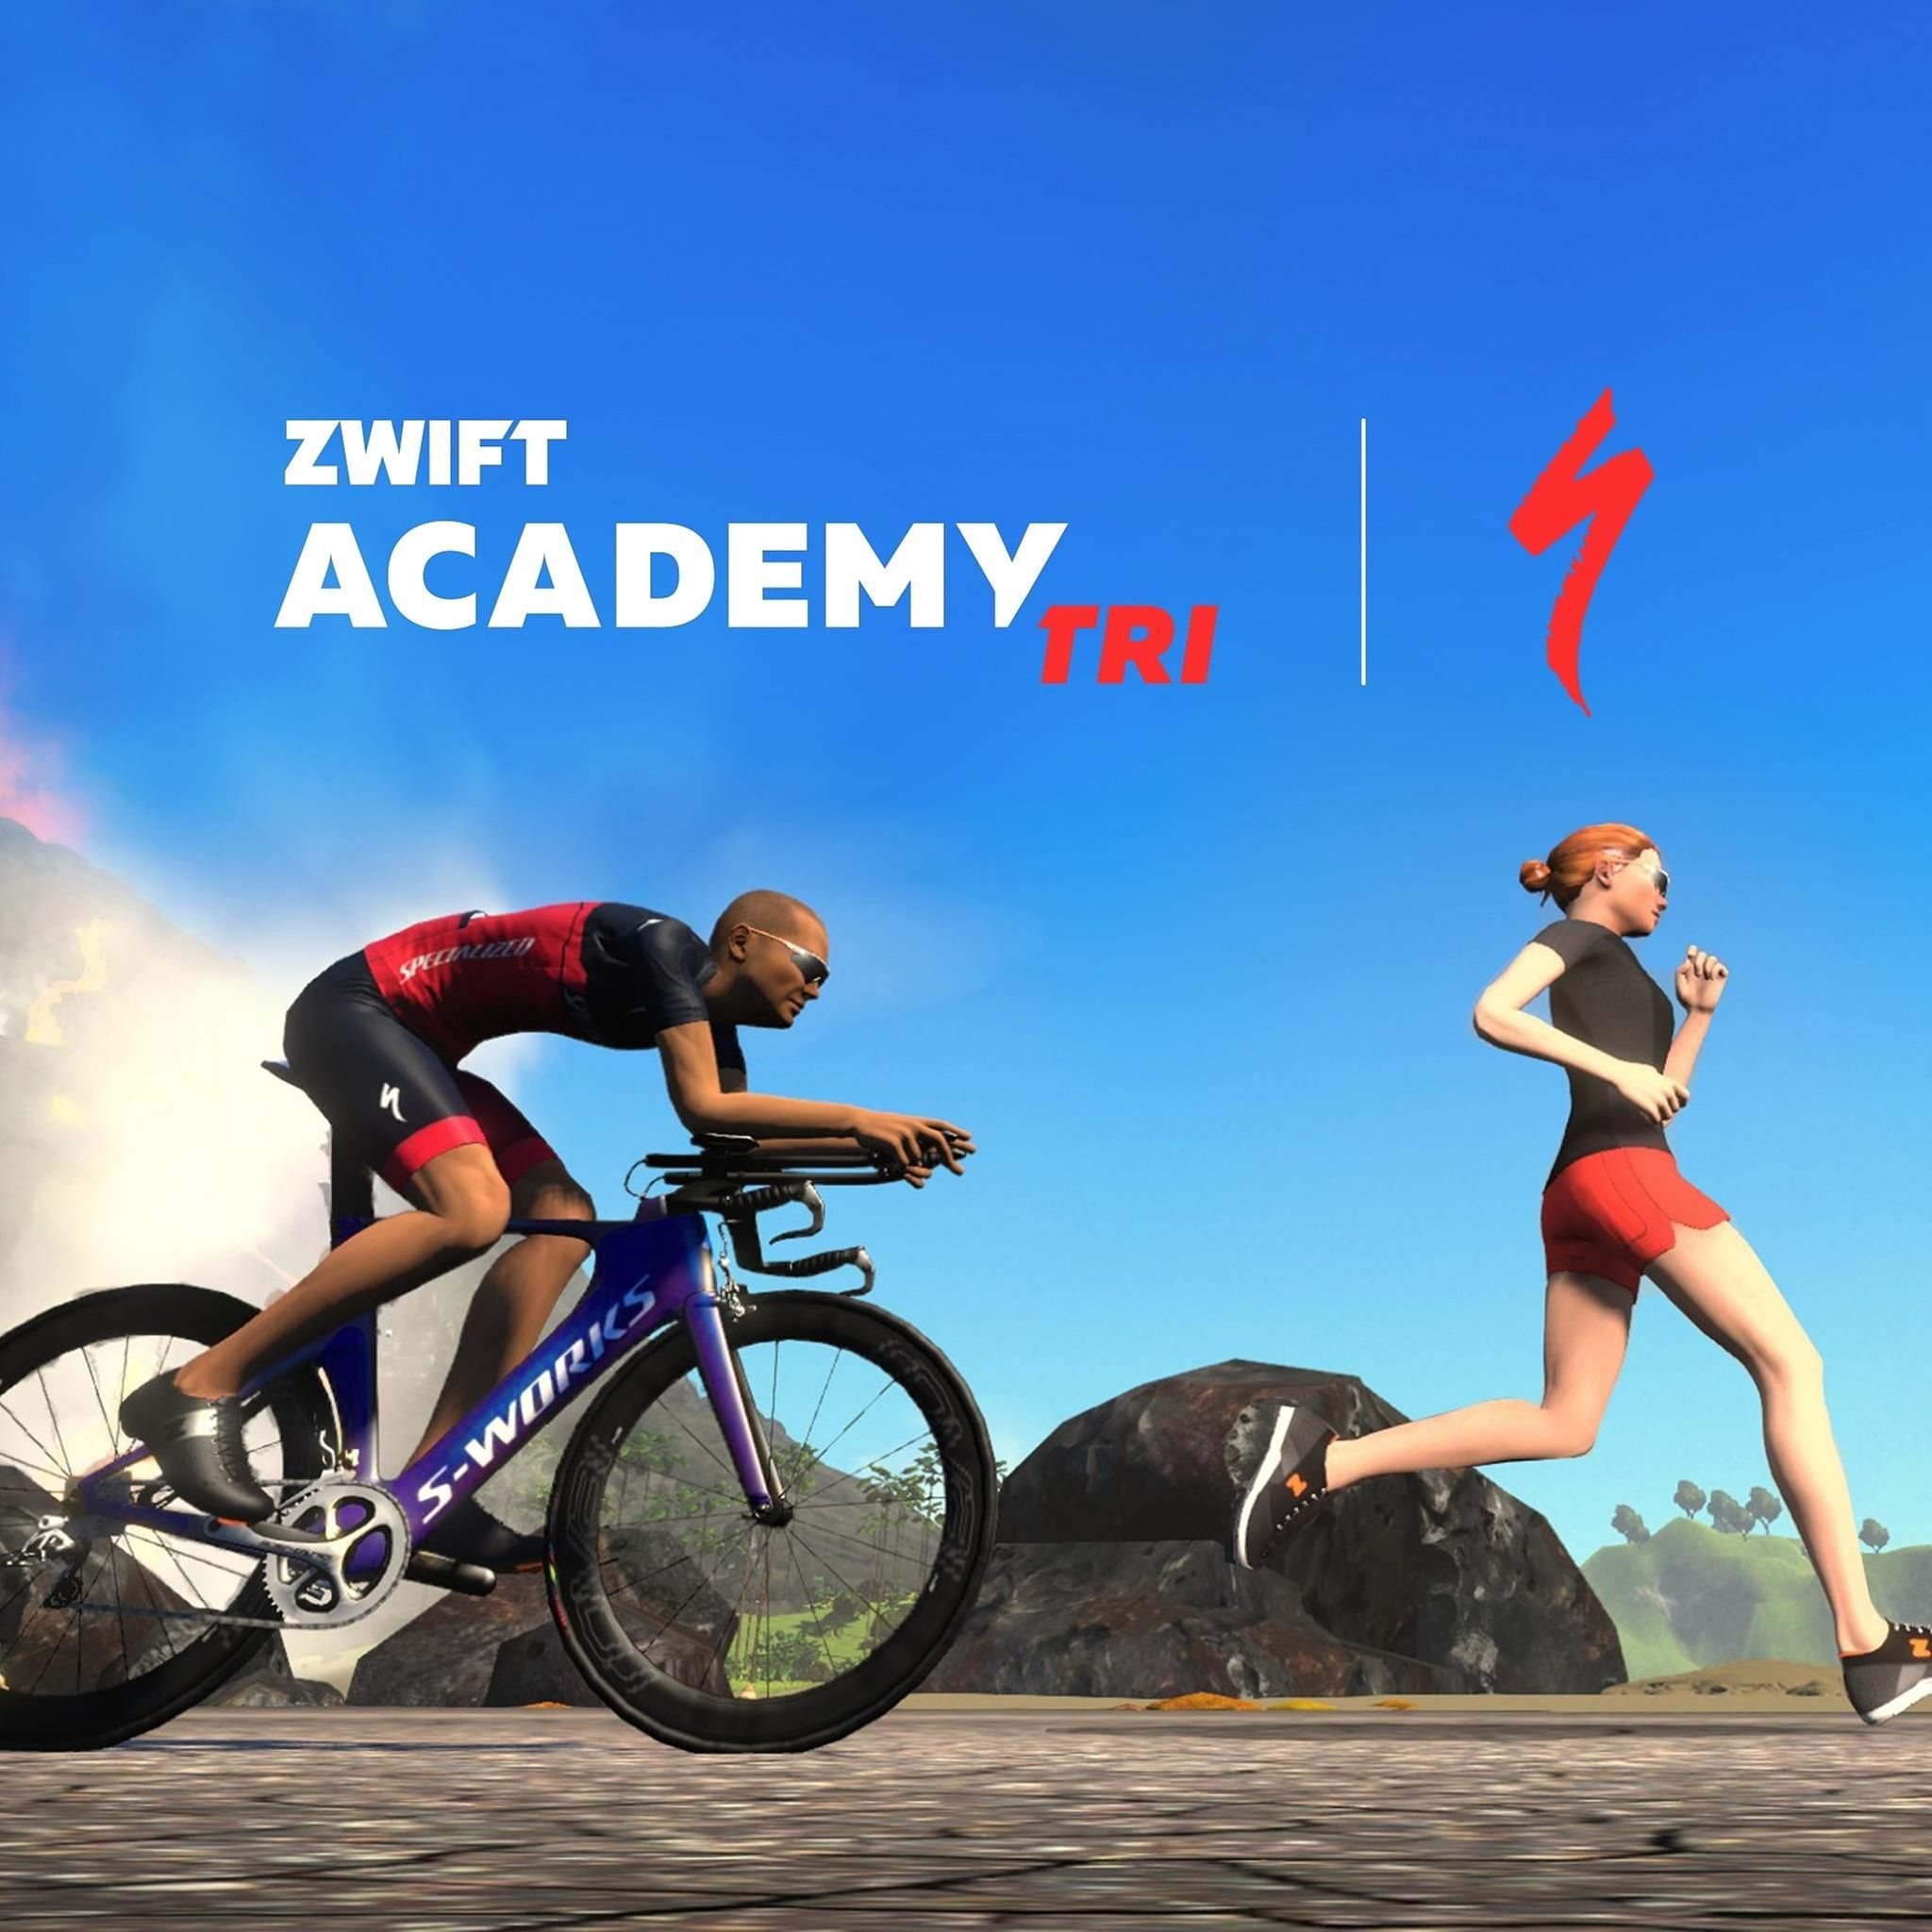 Announcing the Specialized Zwift Academy Tri Team | A post by Zwift